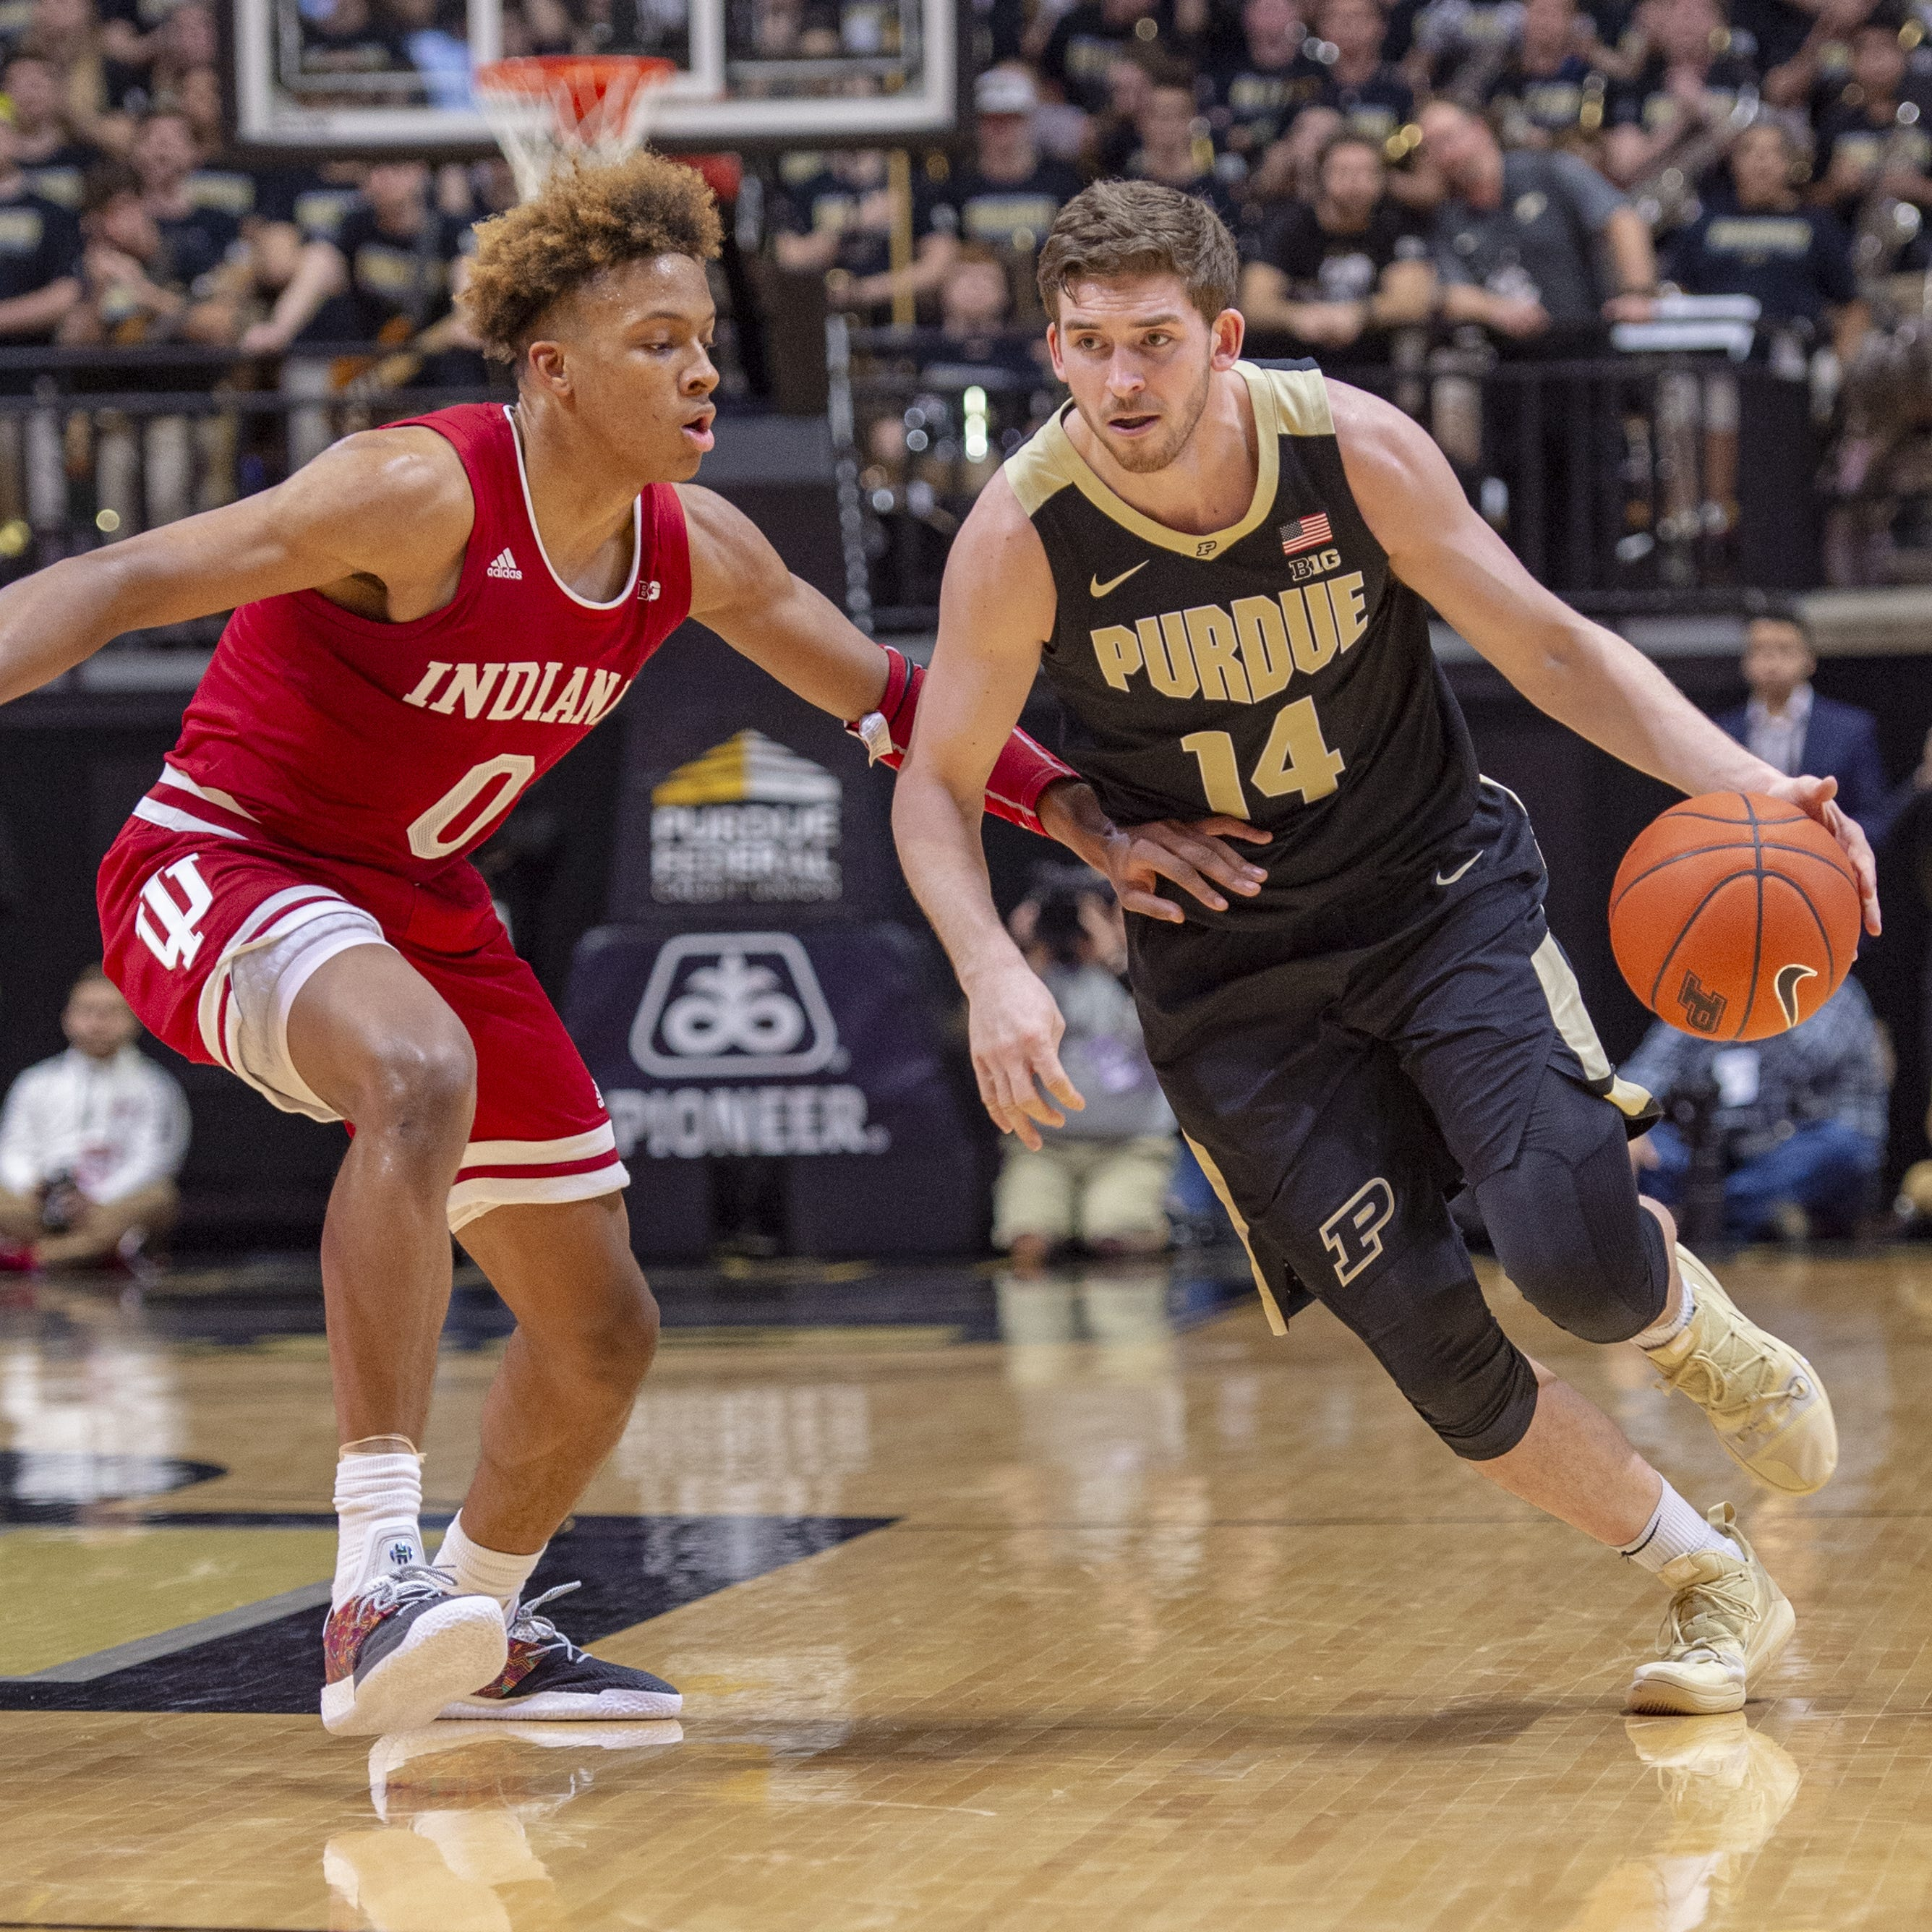 Purdue gets uncommon leadership, a great recruit